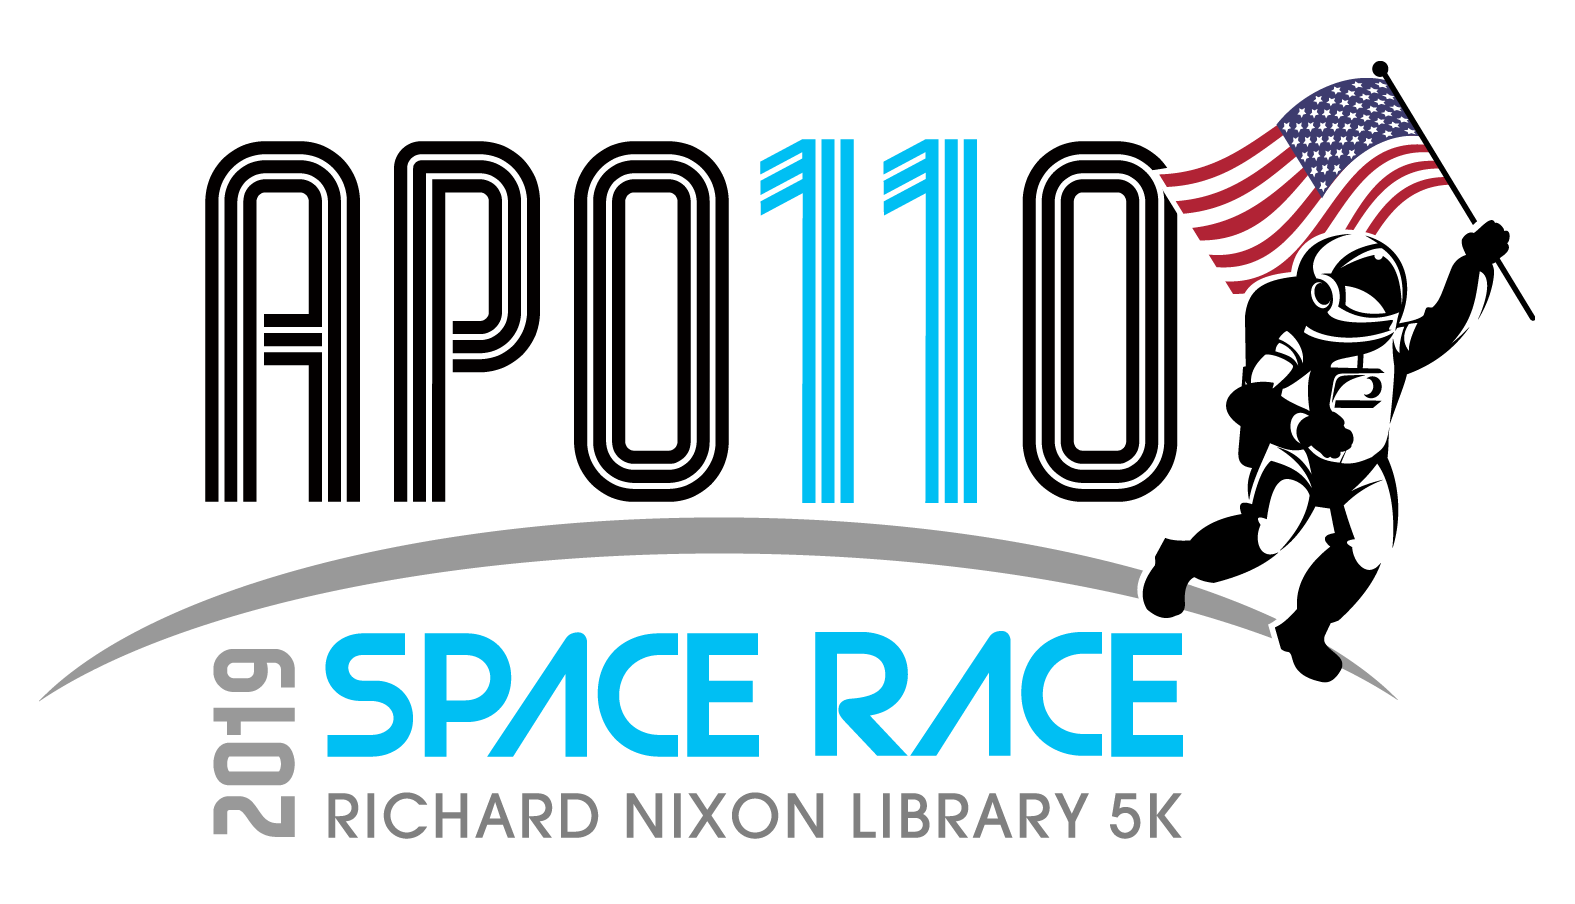 NLF_Space Race logo_final